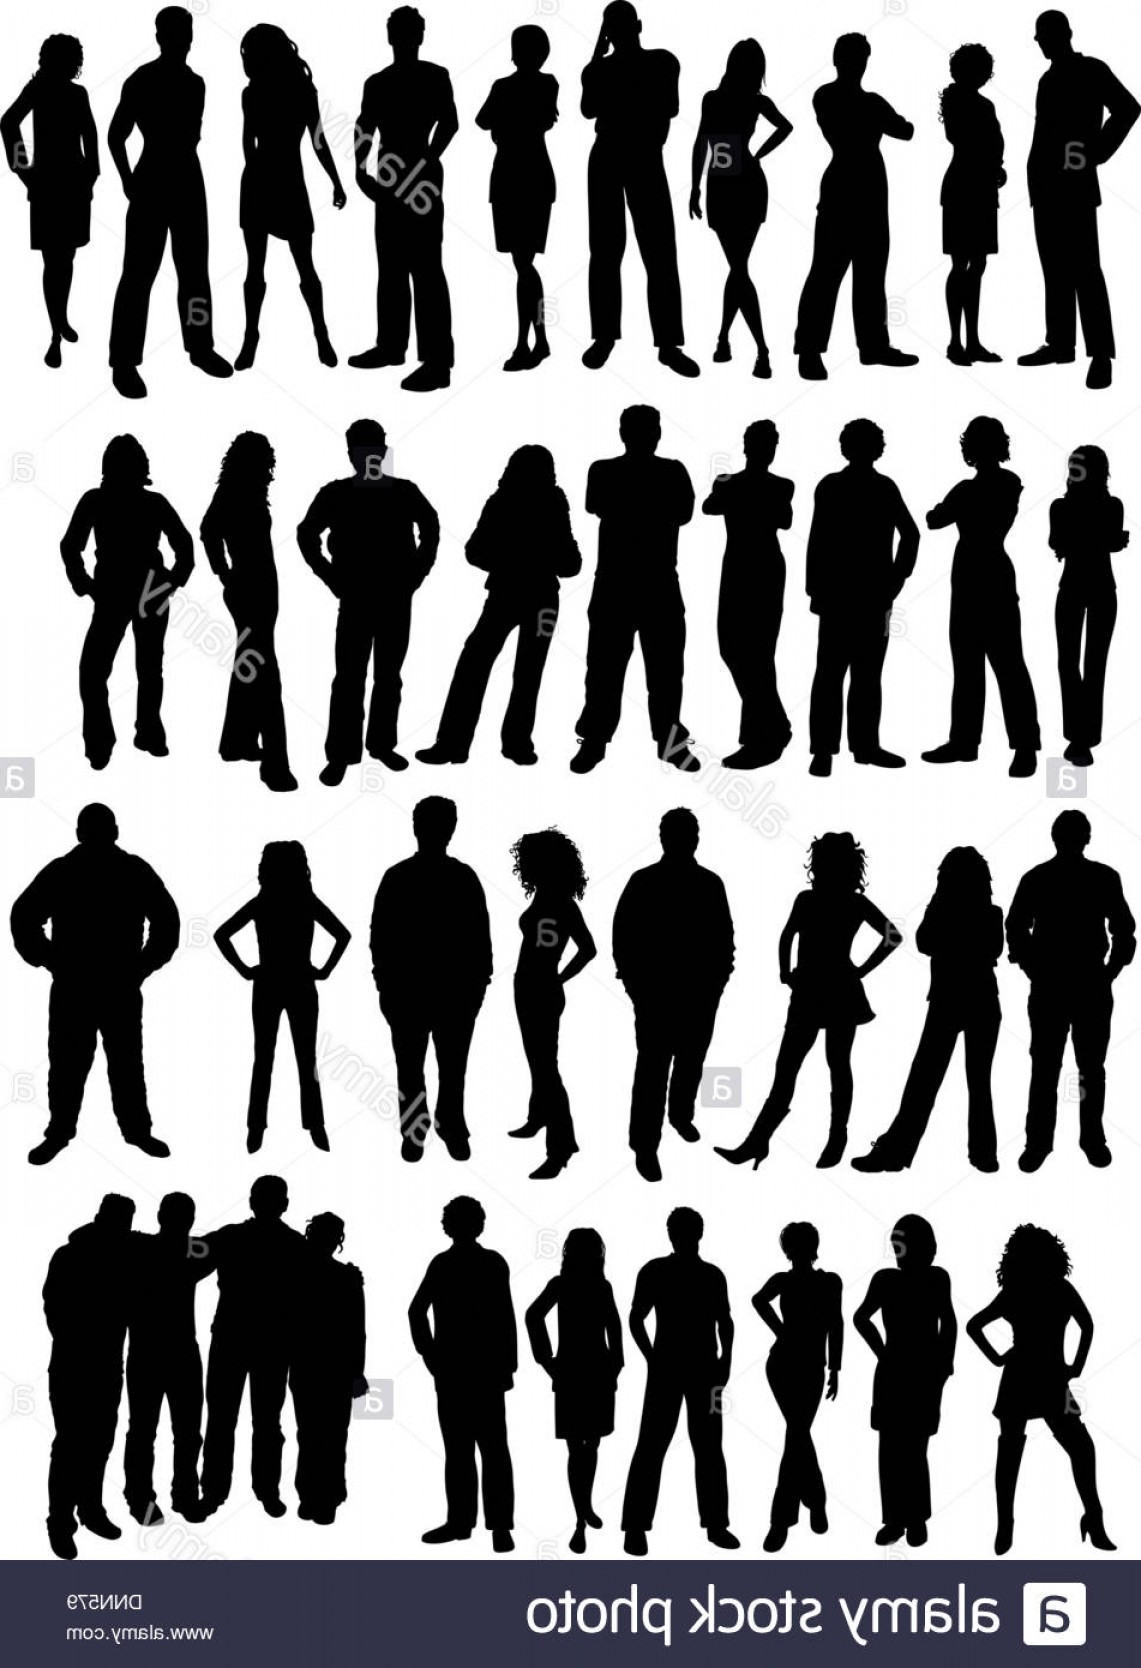 Male Silhouette Vector Art: Stock Photo Silhouettes Of Casual People